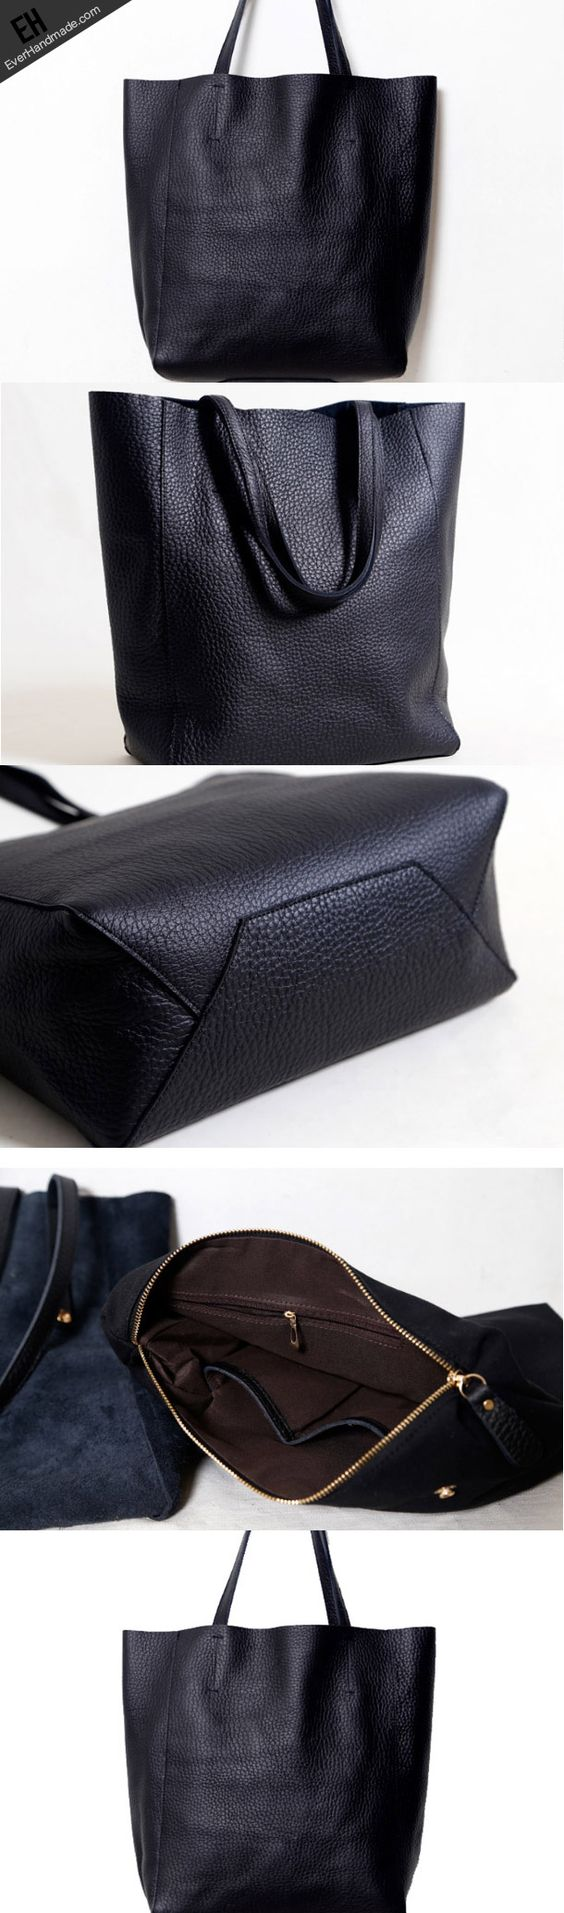 leather black tote...